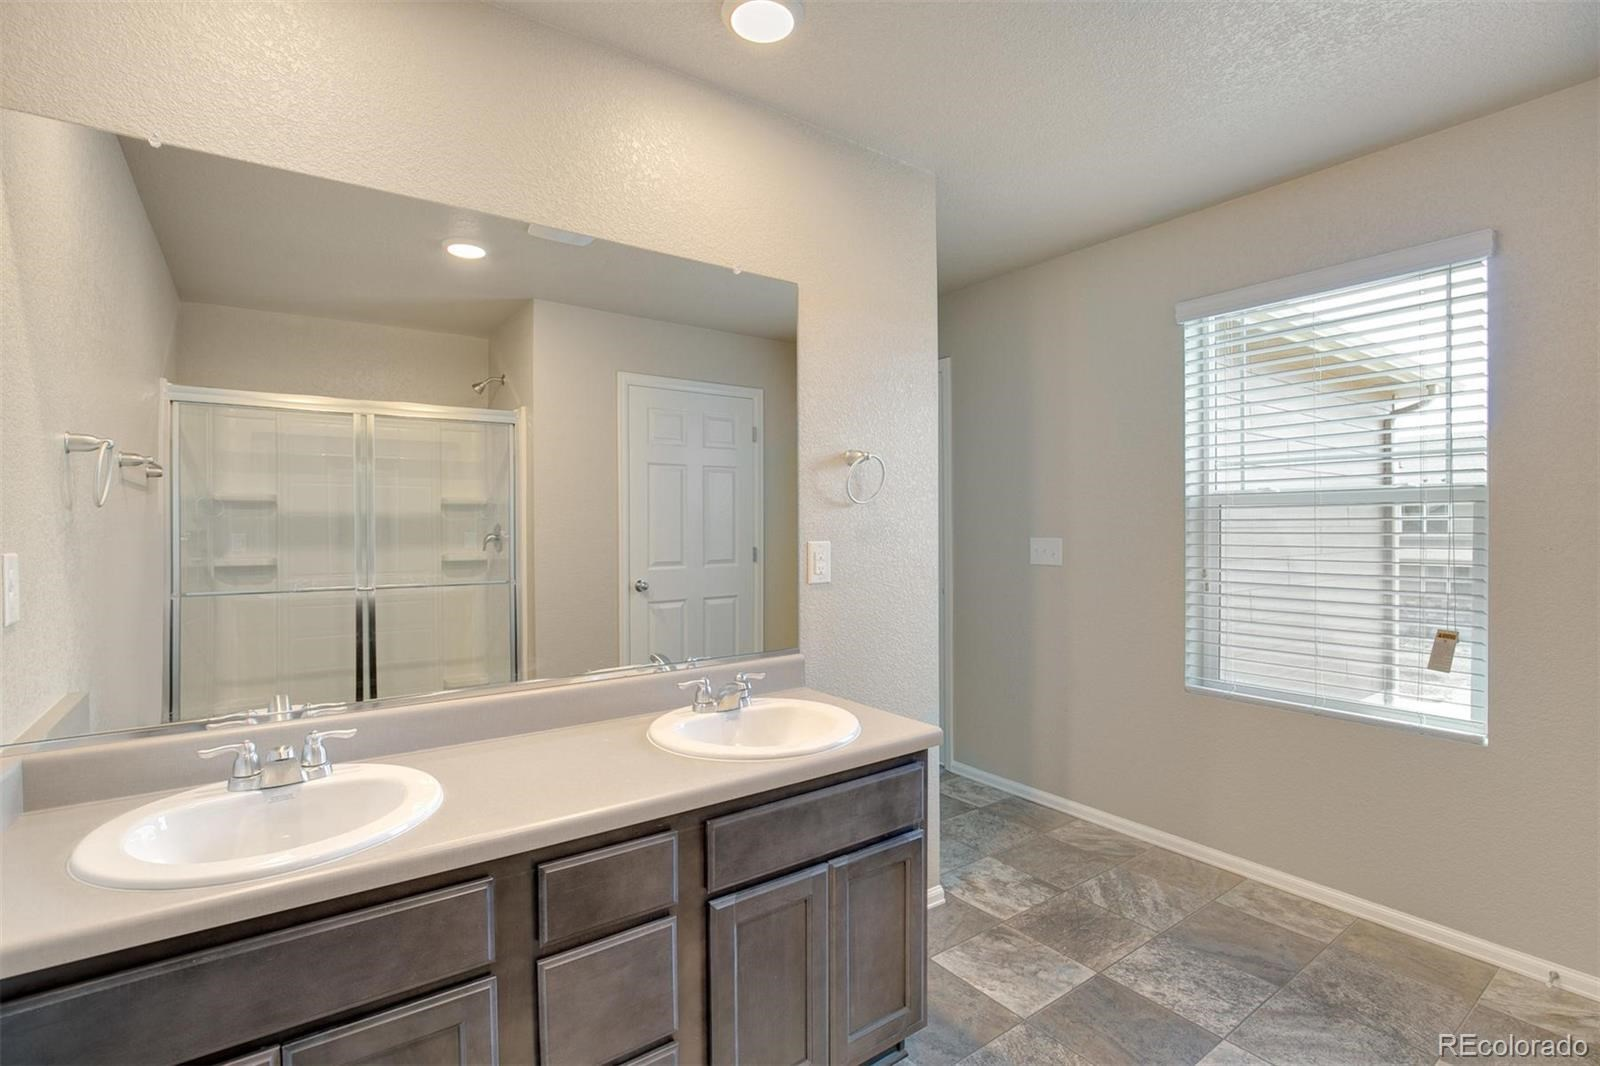 MLS# 4867430 - 20 - 915 Camberly Drive, Windsor, CO 80550